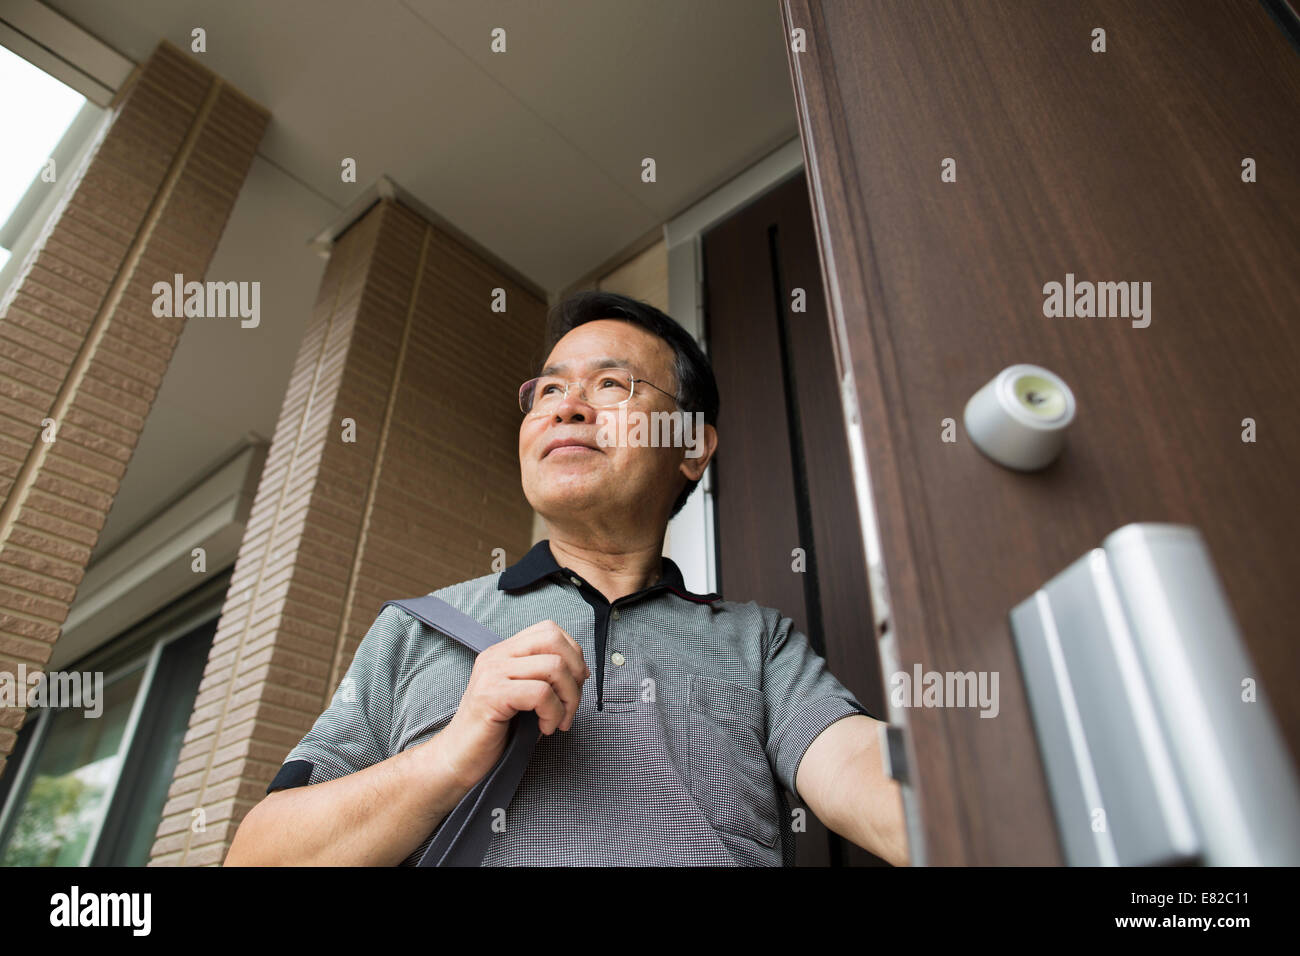 A man standing at his front door. - Stock Image